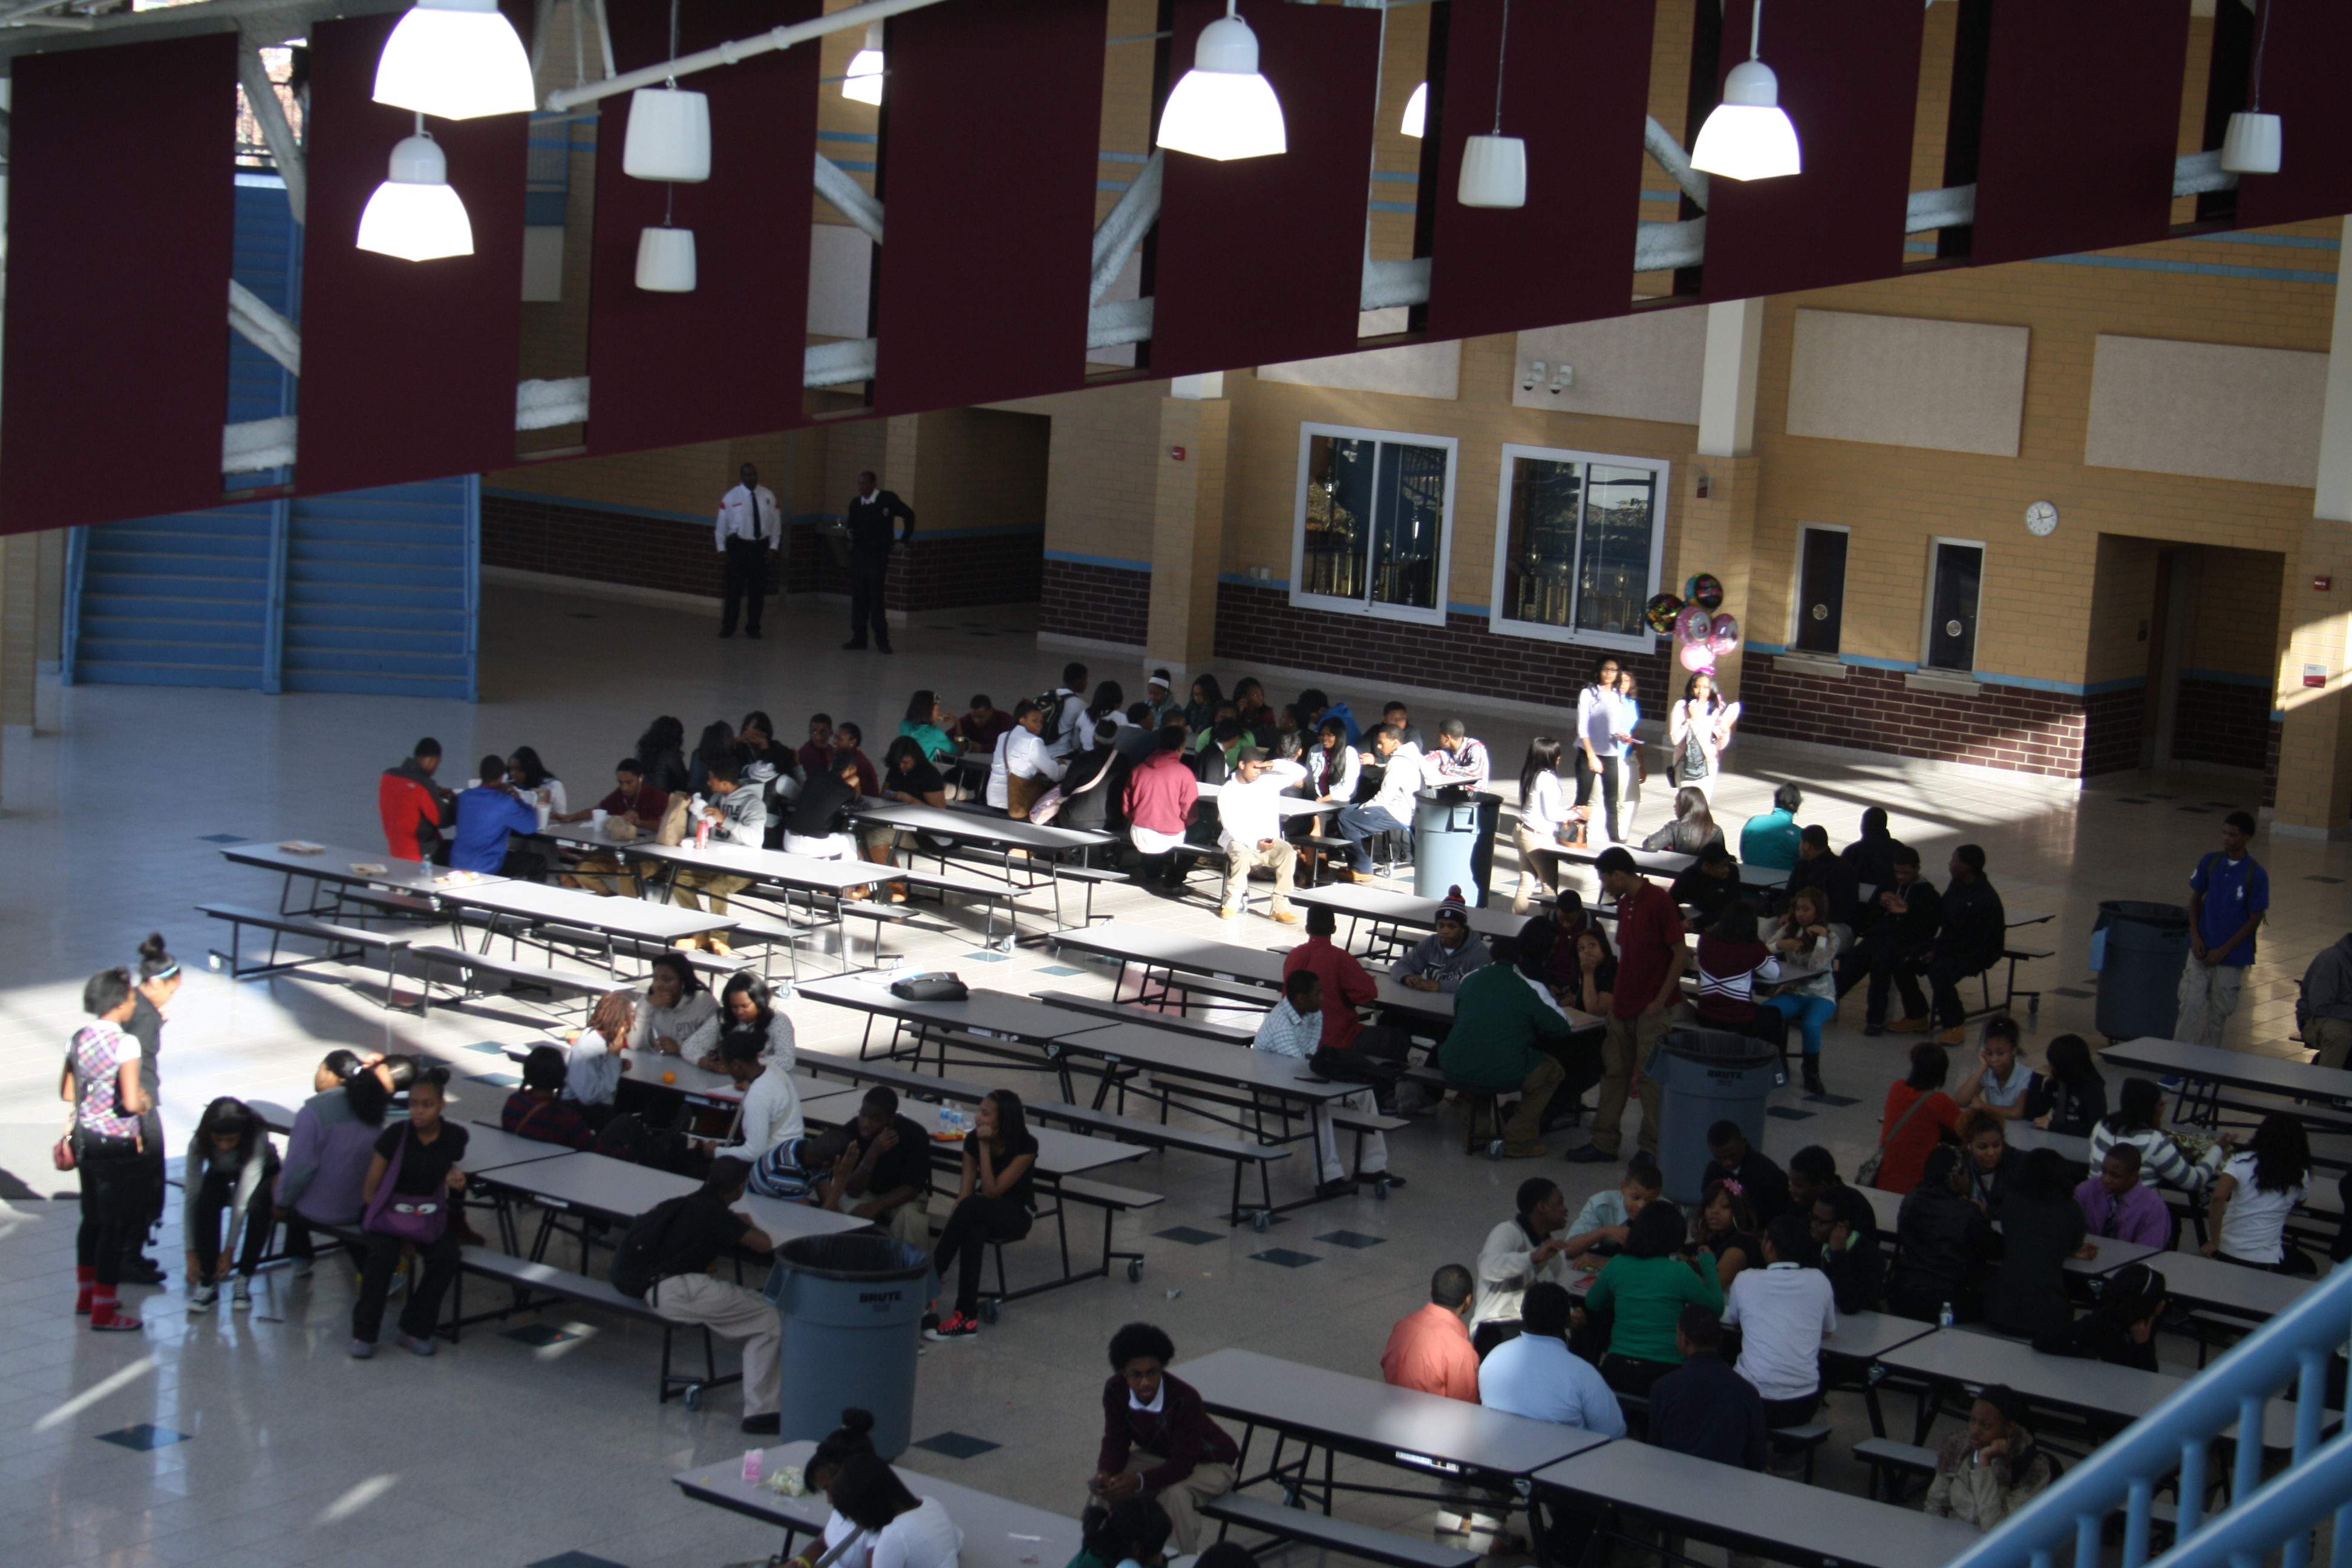 an analysis of jonathans high school troubles The high school underwent renovations this summer to create an additional vestibule at entrances for security plus four more offices for trauma counselors, wall said.